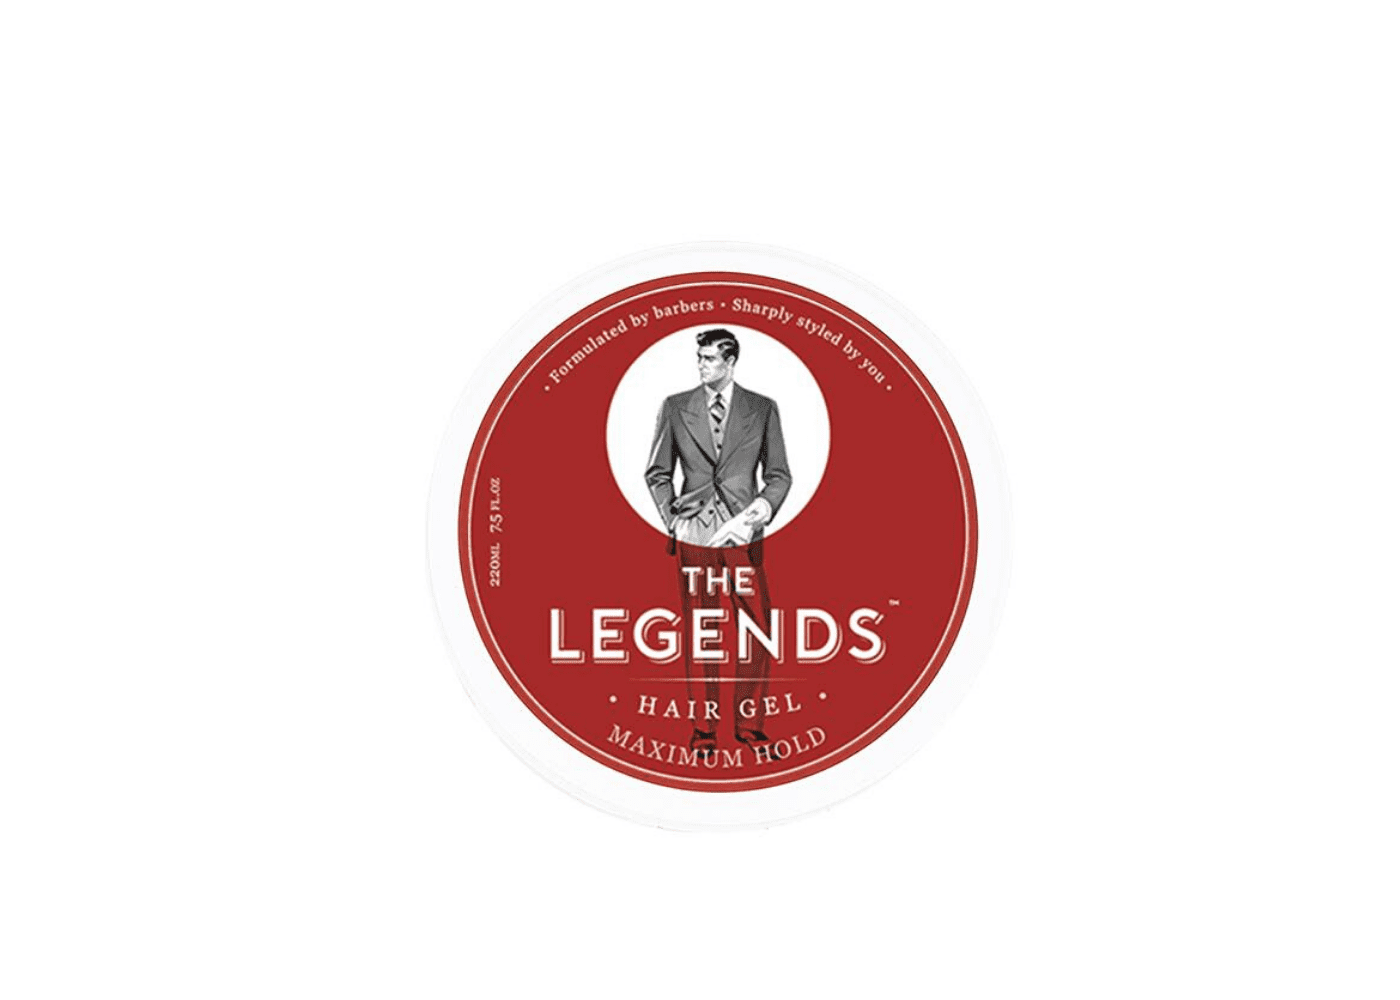 The Legends London: Maximum Hold Hair Gel| men's hair styling products